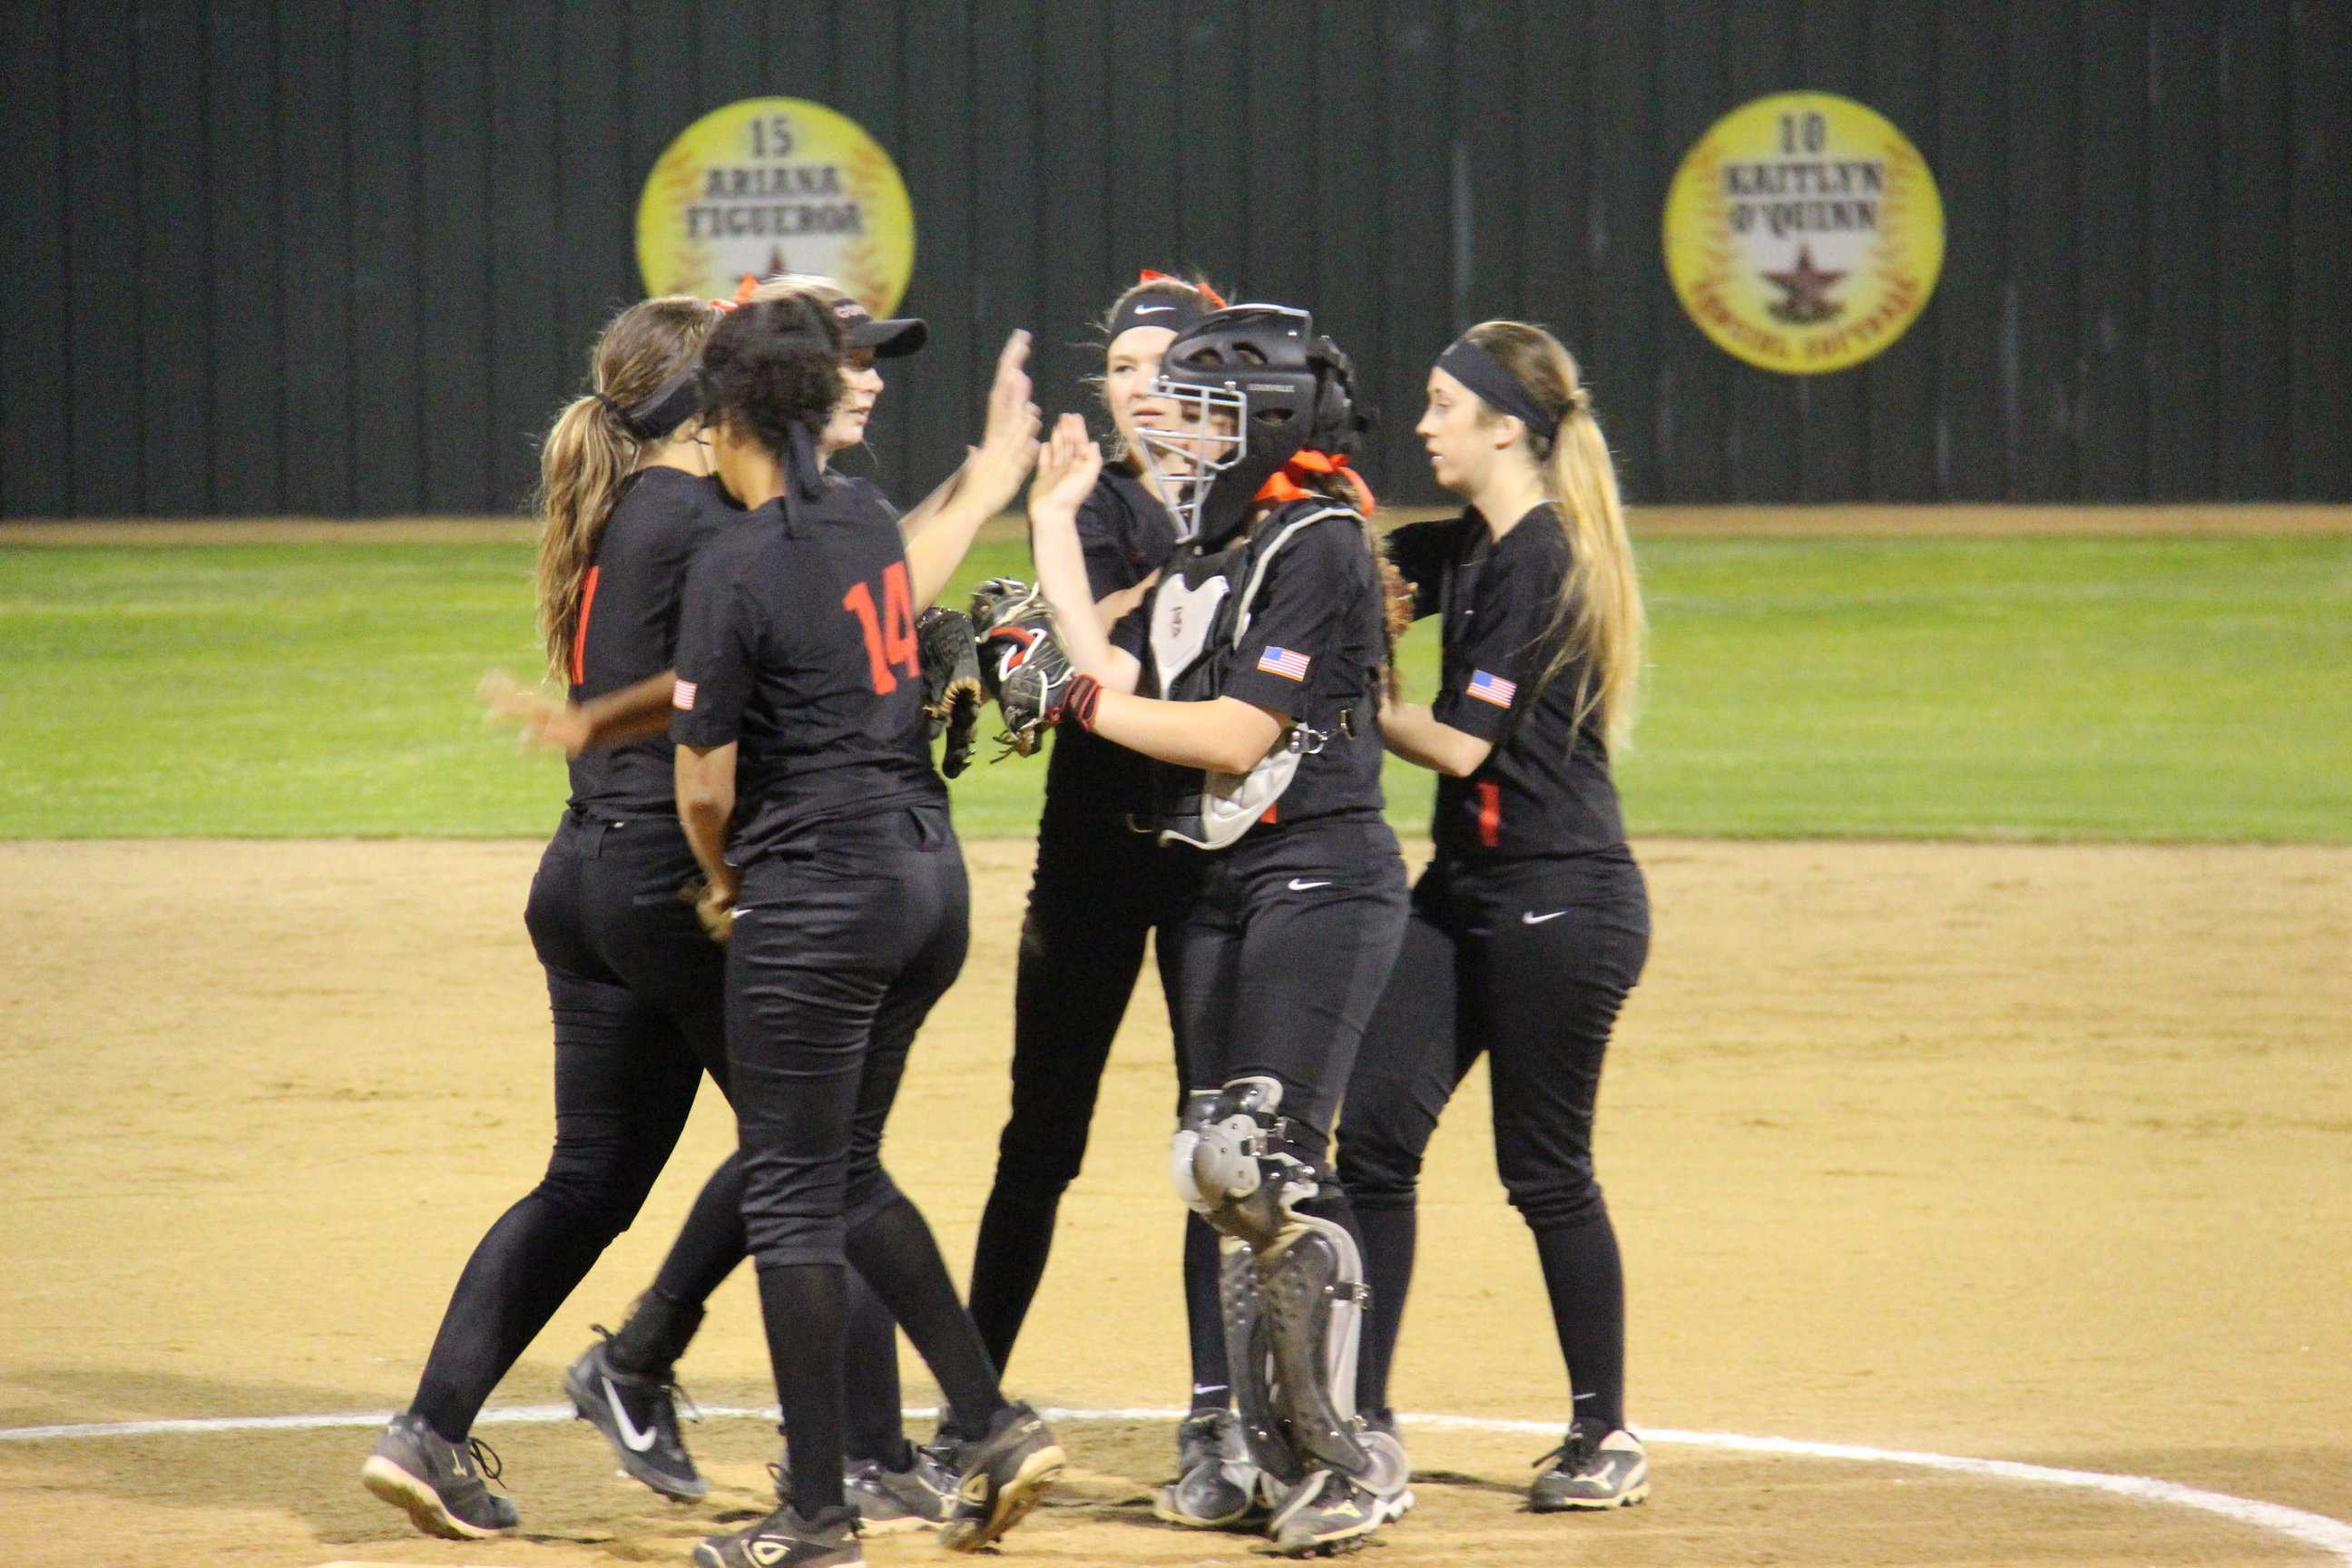 The Coppell Cowgirls come together on the field during the second inning of Friday night's District 9-6A opener against Richardson Pearce. The Cowgirls defeated the Lady Mustangs, 8-5.